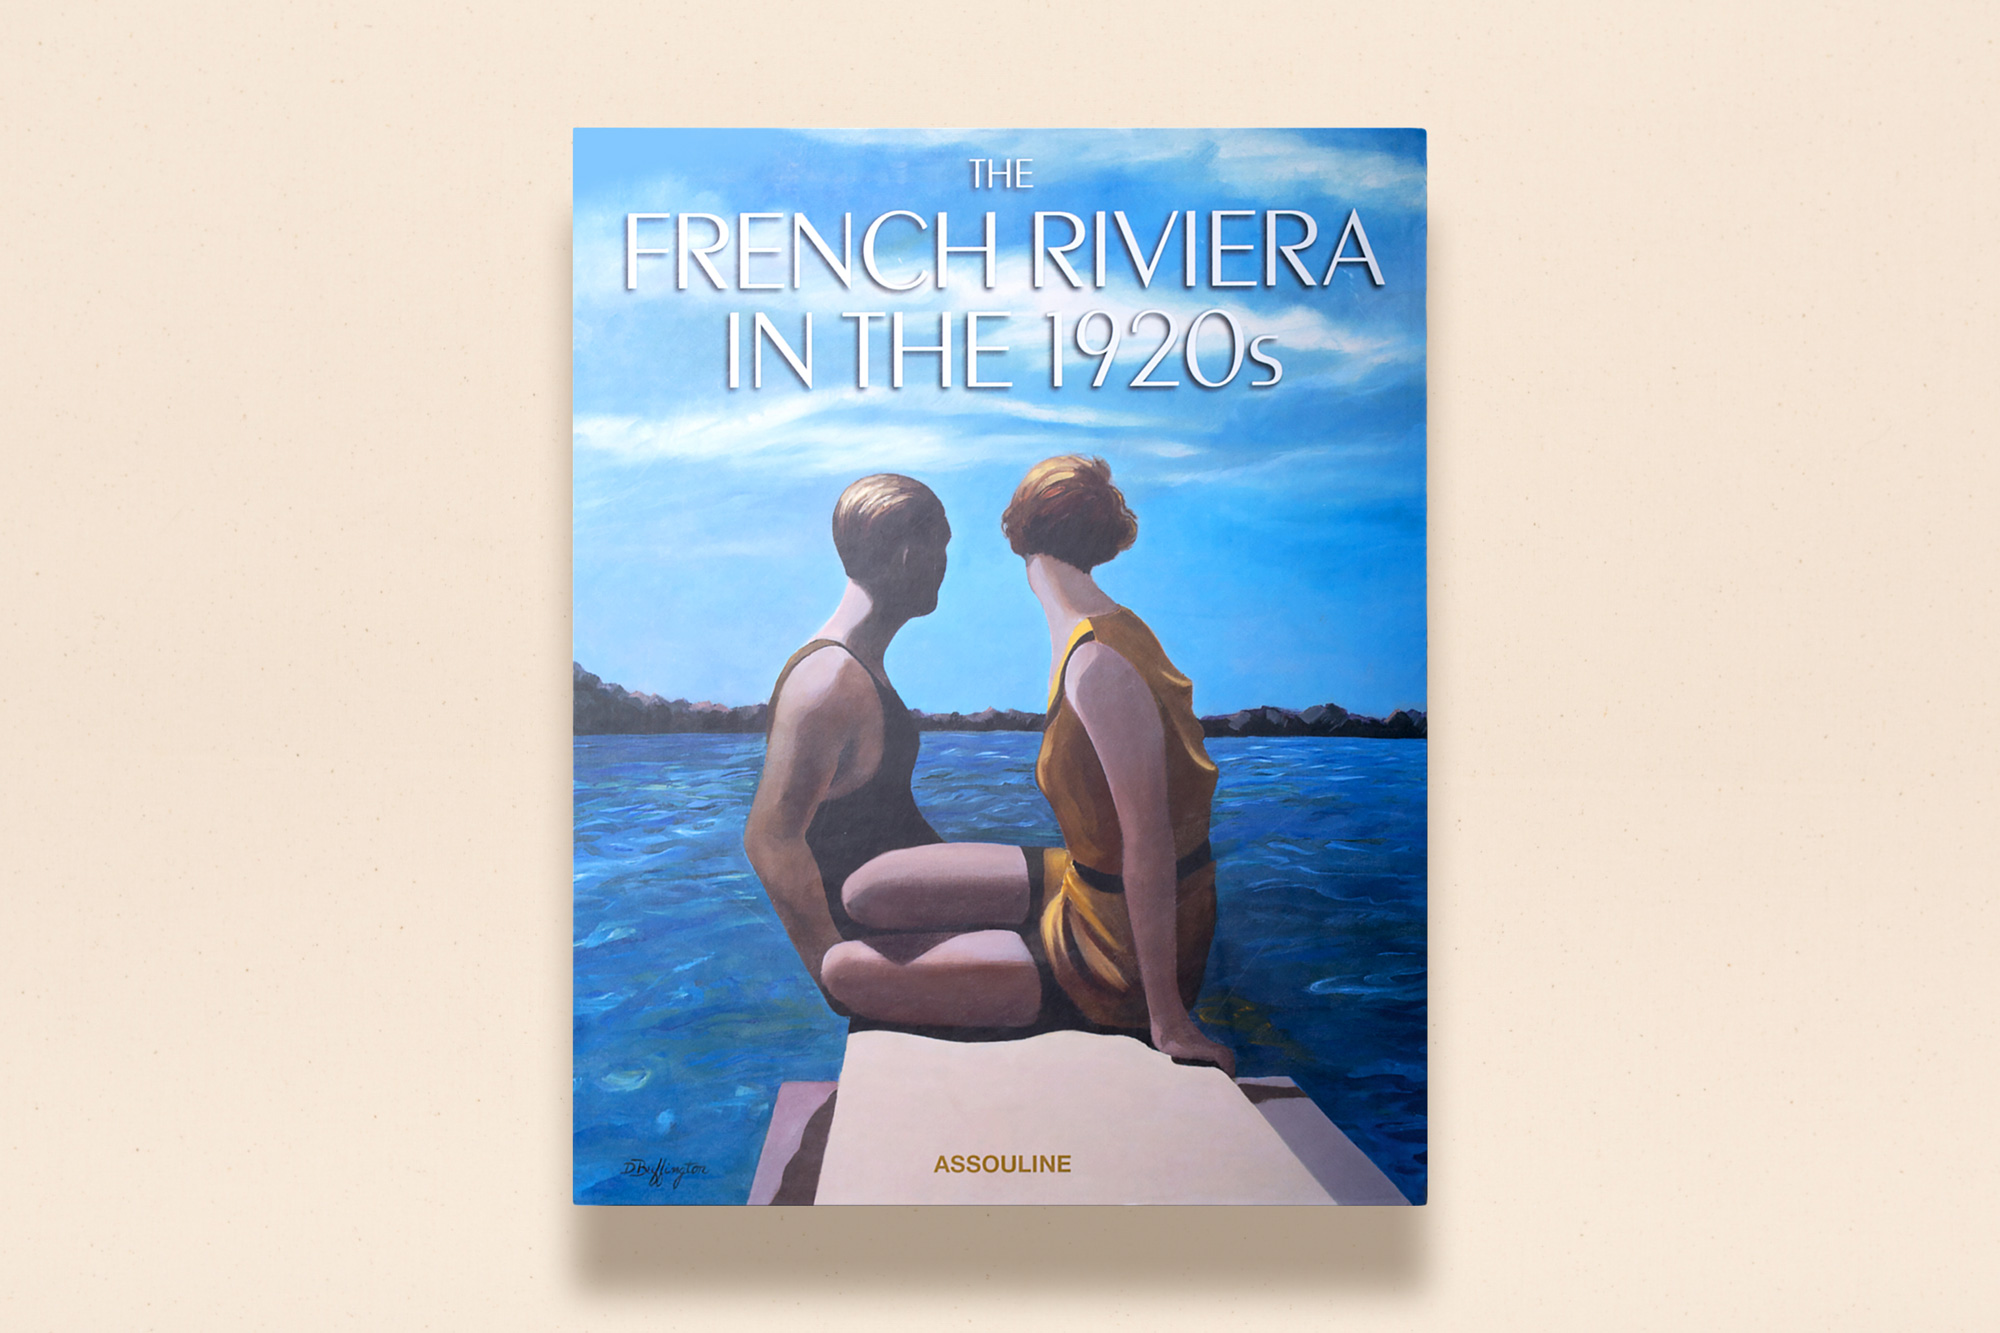 The-French-Riviera-in-the-1920s